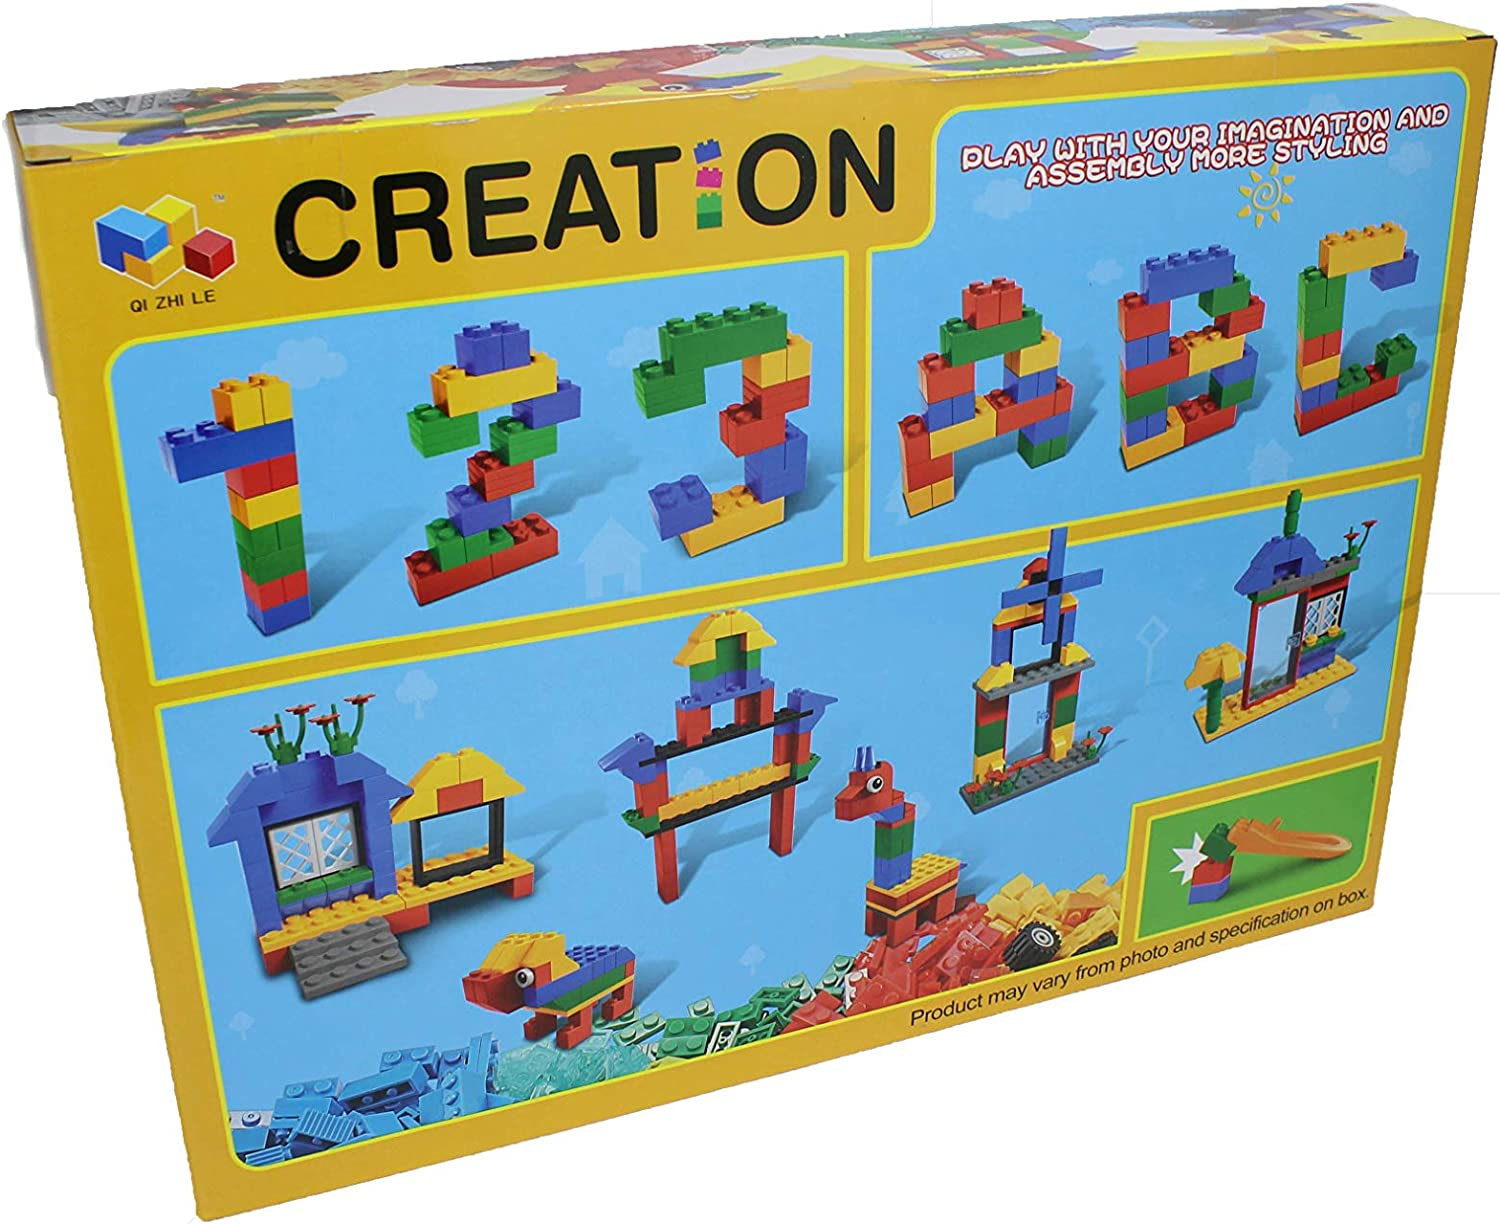 STEM Educational Learning Activity 10x10 for Kids Compatible with All Major Brands - Great for Creative /& Construction Play Jade Branches 1100 Building Bricks with 2 baseplates